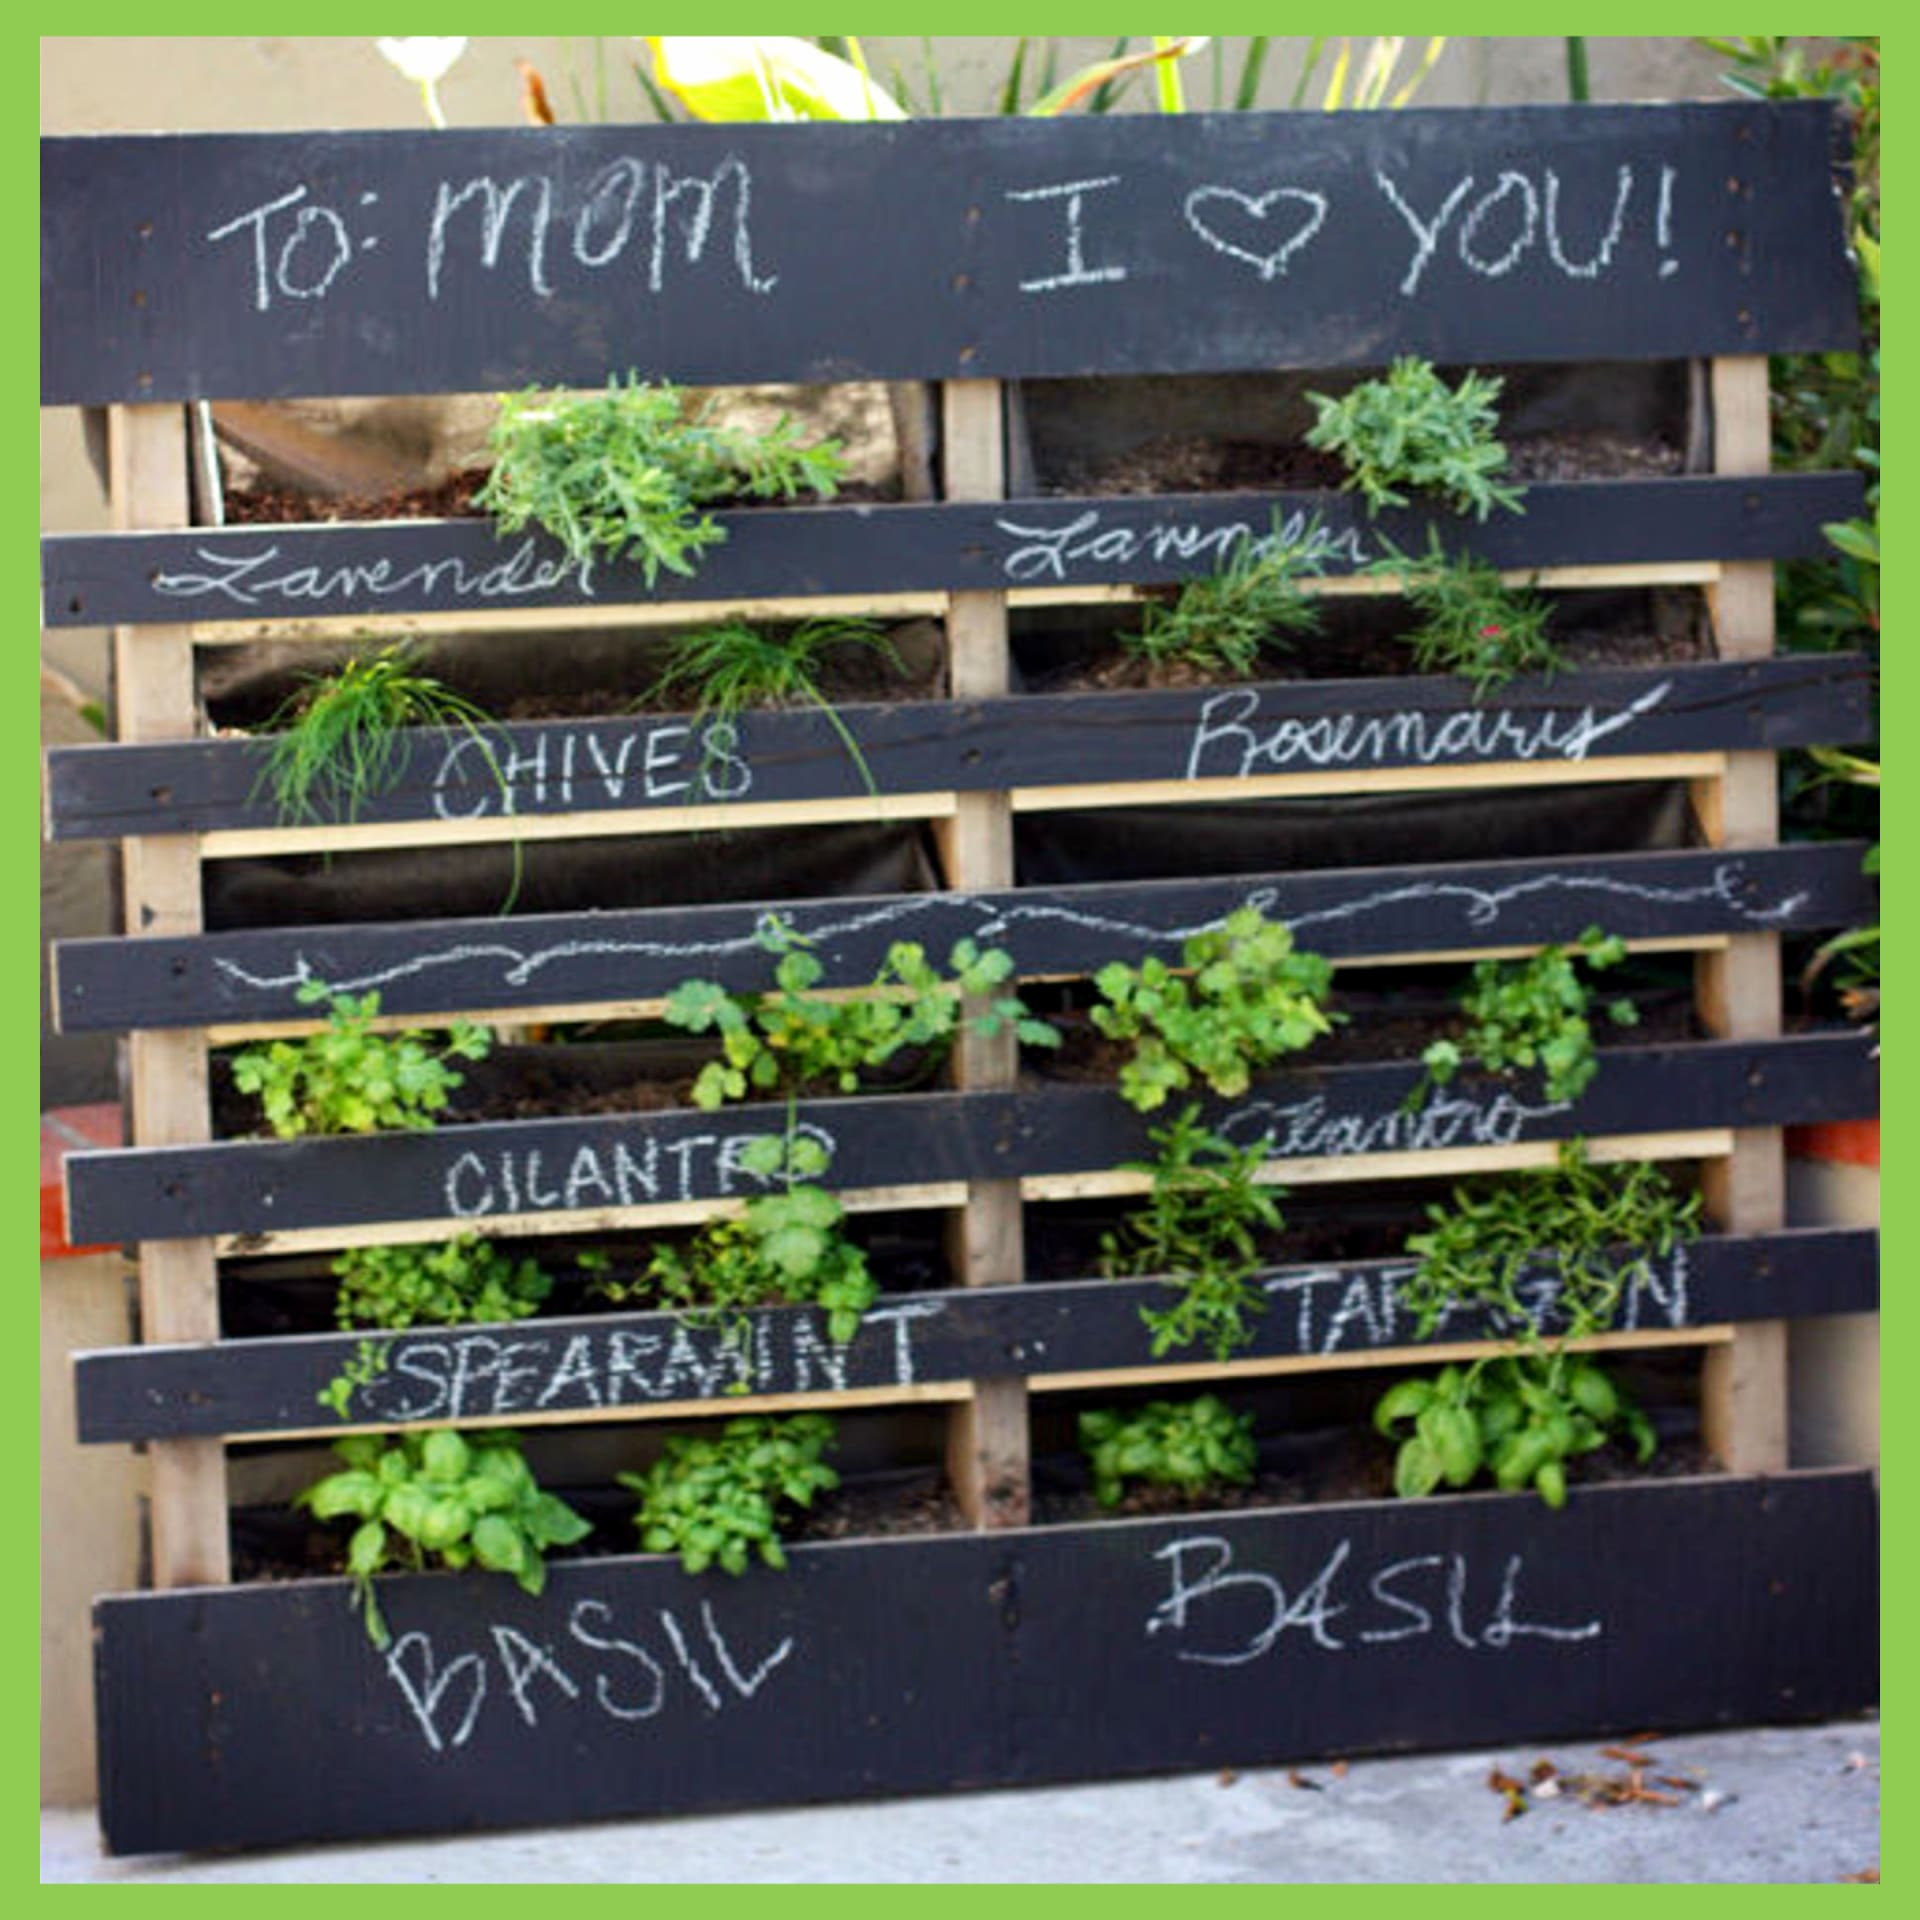 Pallet herb garden - DIY vertical pallet herb or vegetable garden to grow veggies, herbs, strawberry plants and more - easy DIY pallet projects ideas for your garden, backyard, patio, decks or in your house.  How to build a pallet herb garden ( you'll see how easy it is how to make it) - Great DIY gift for mom too!